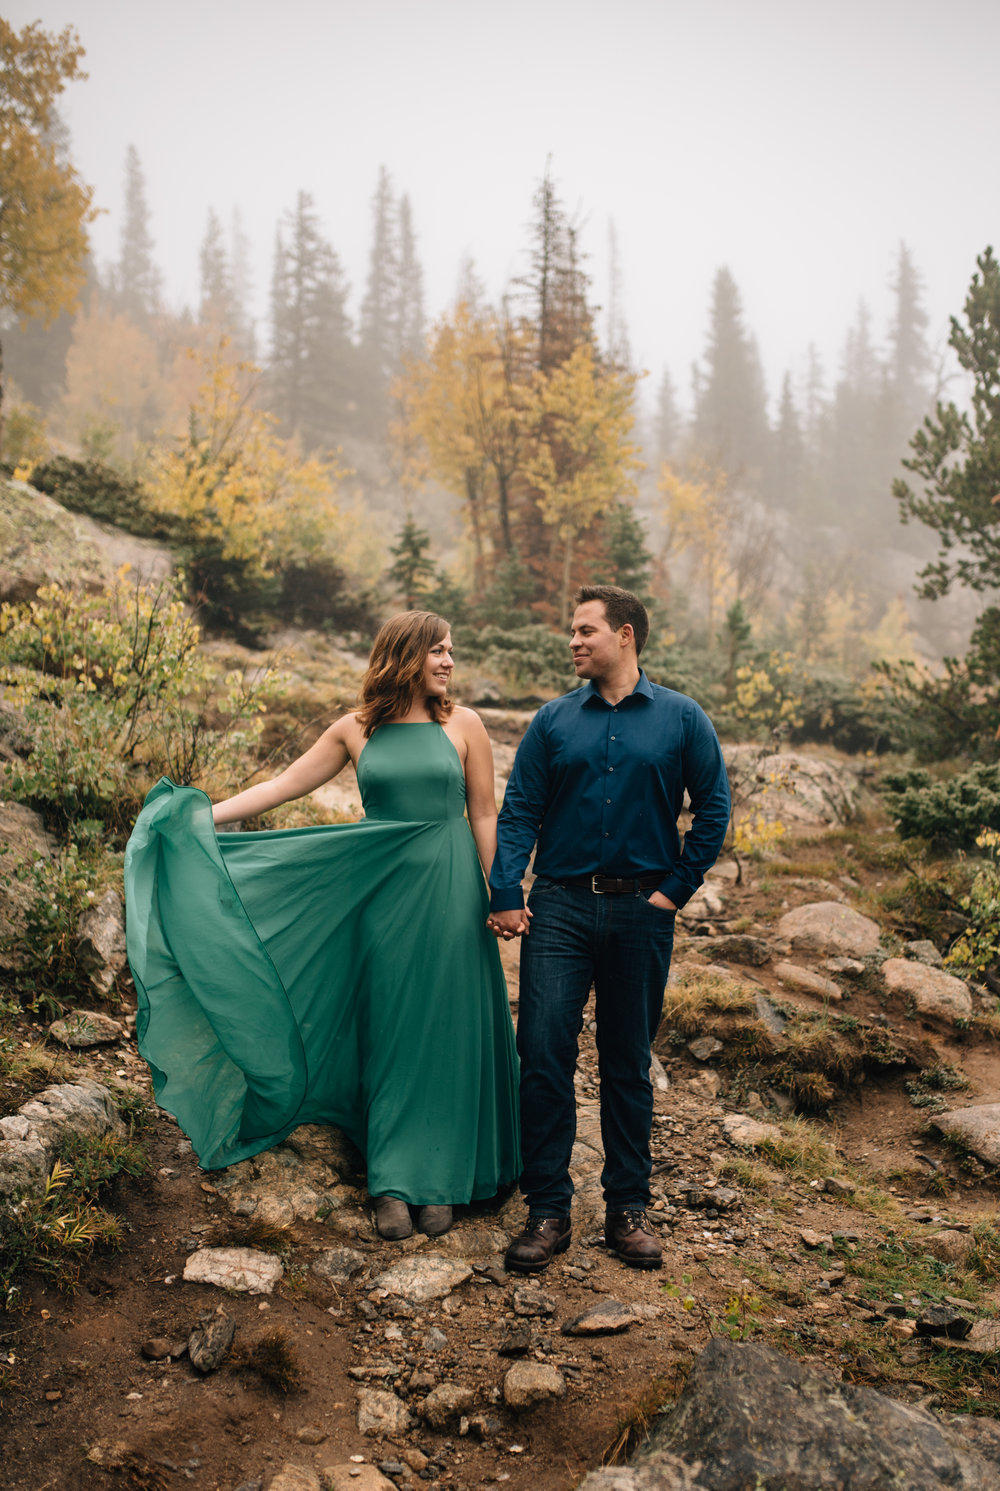 Breckenridge, Colorado wedding photographer.